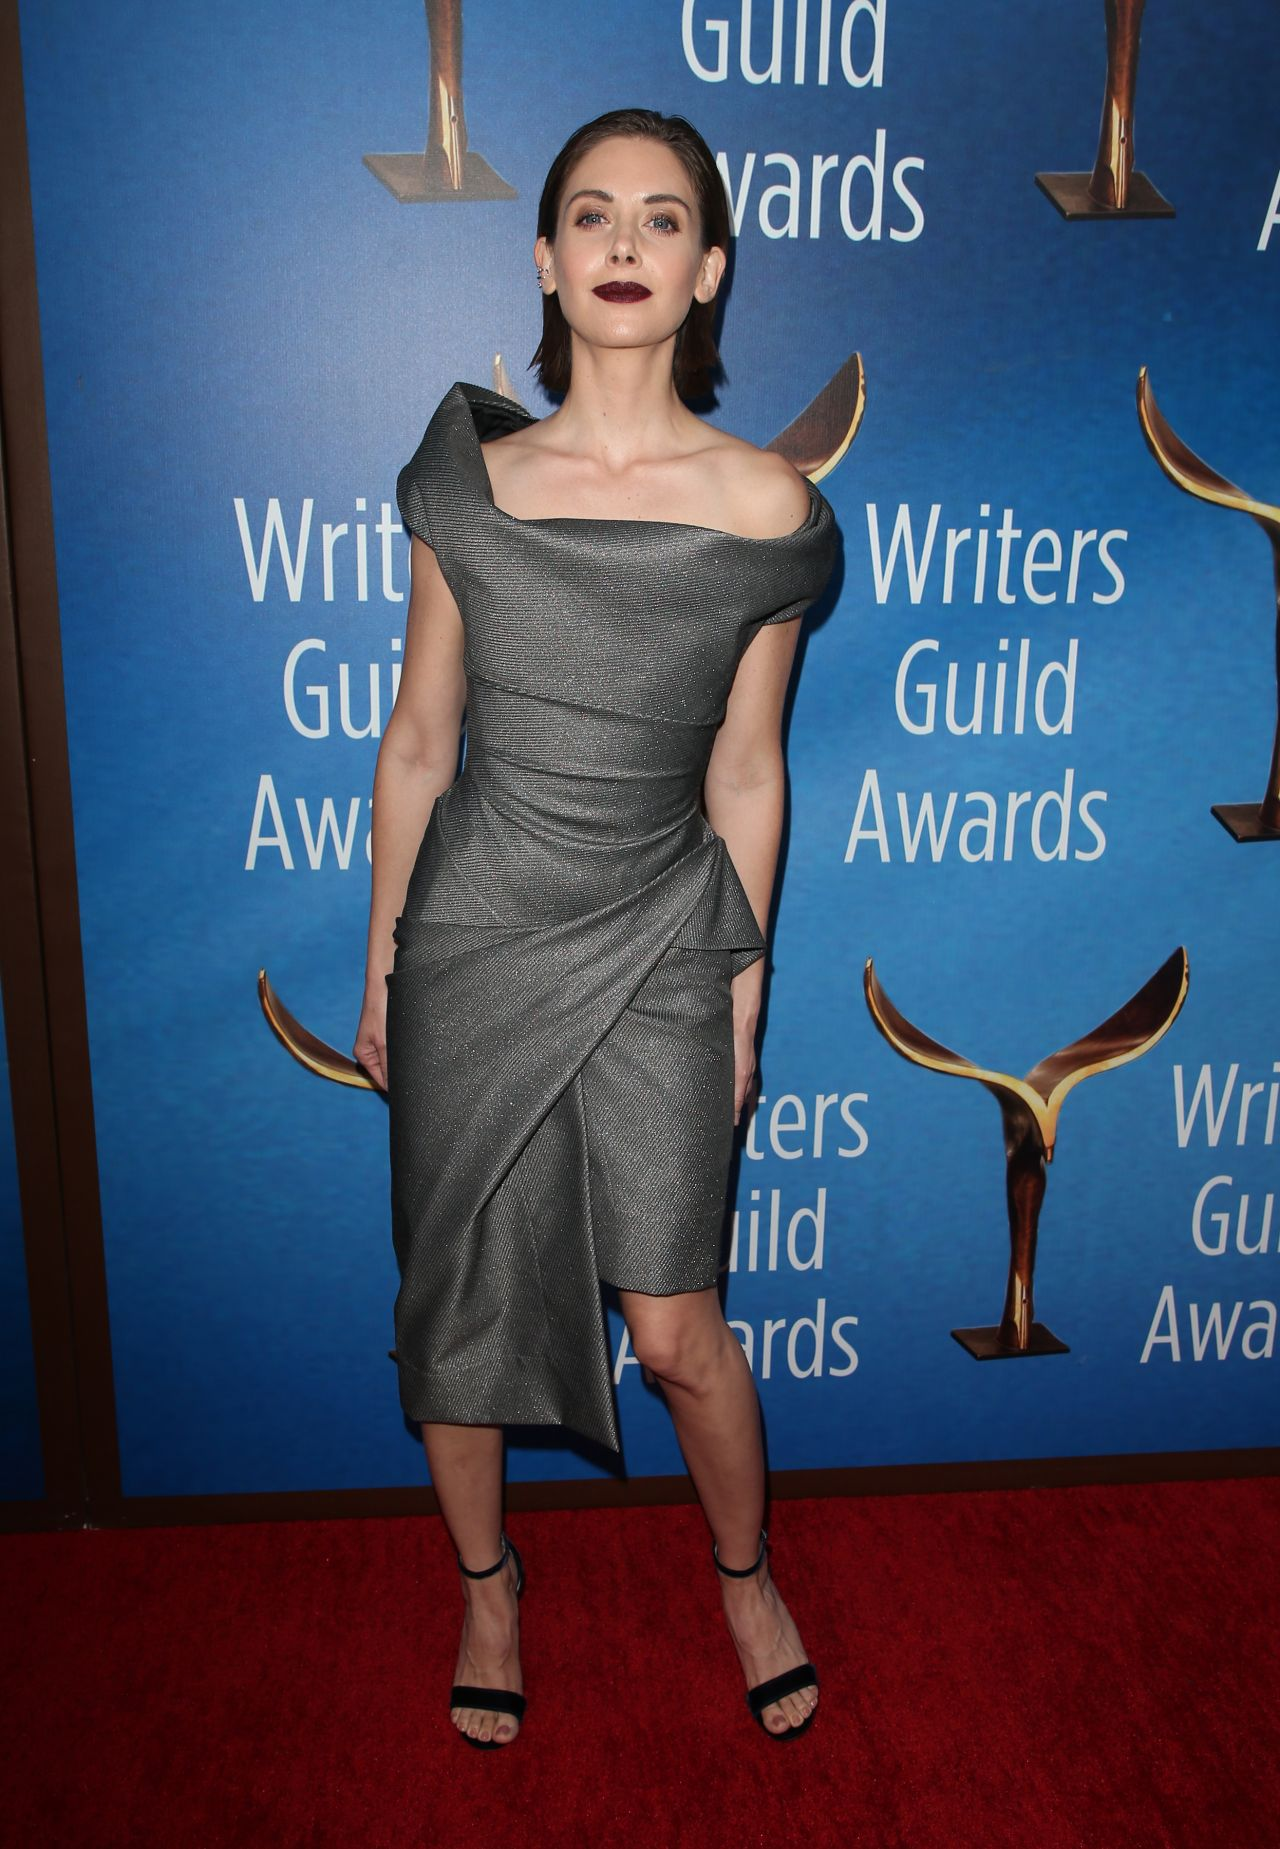 http://celebmafia.com/wp-content/uploads/2018/02/alison-brie-writers-guild-awards-2018-red-carpet-5.jpg